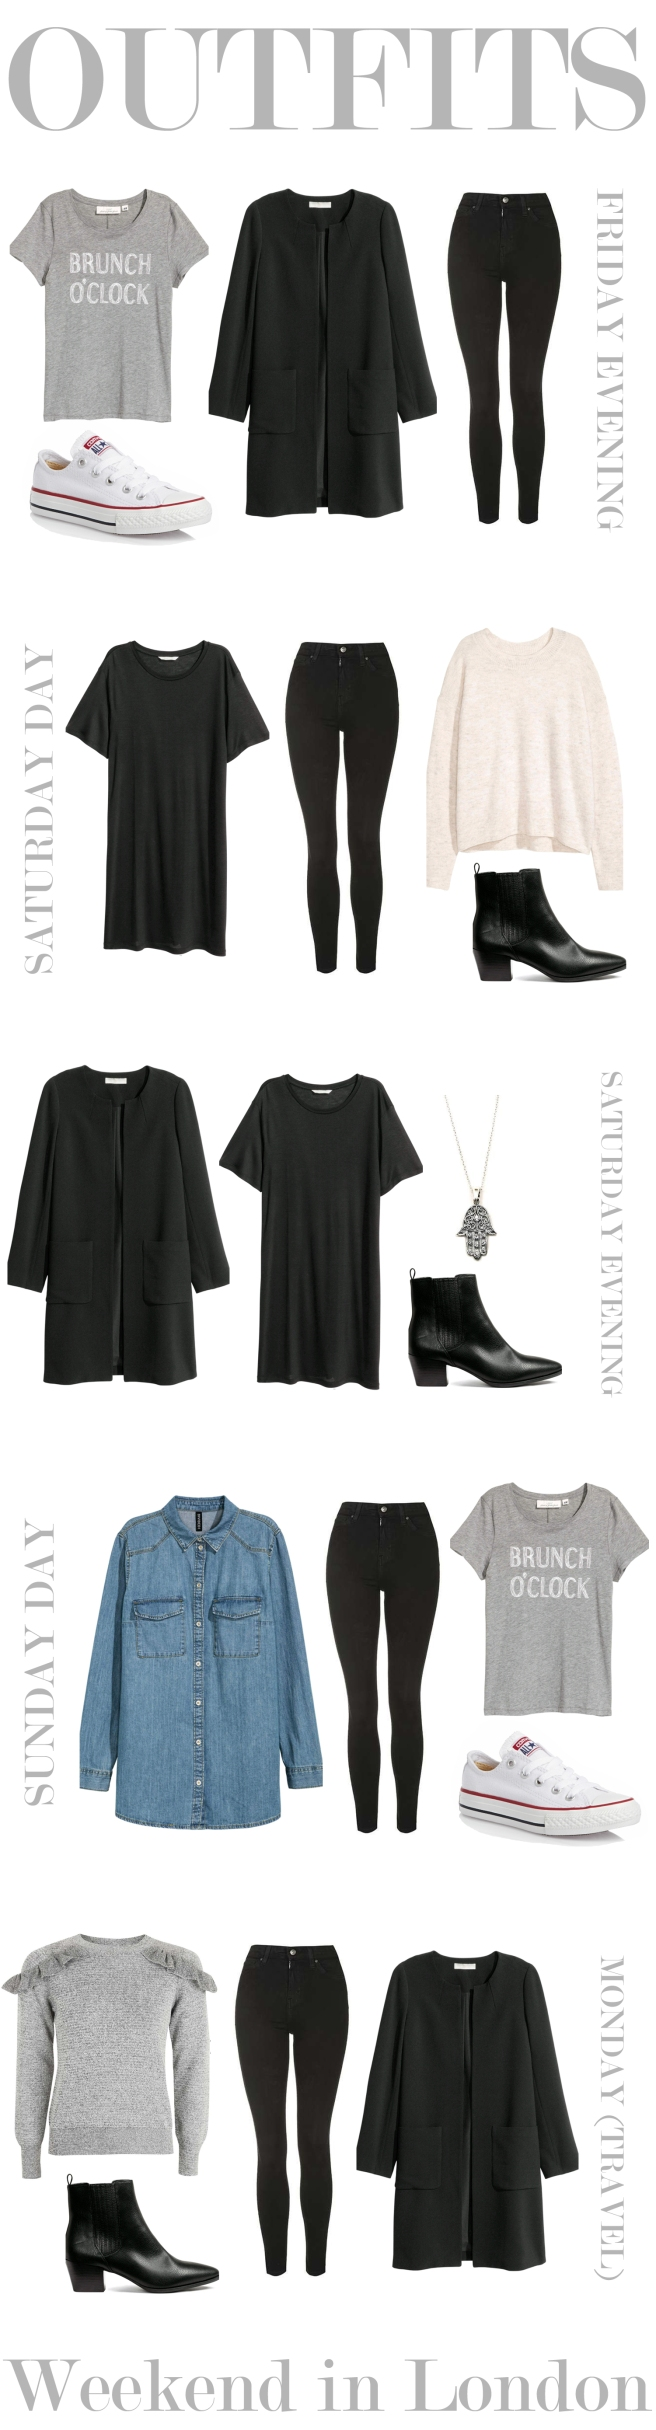 weekend-in-london-outfits